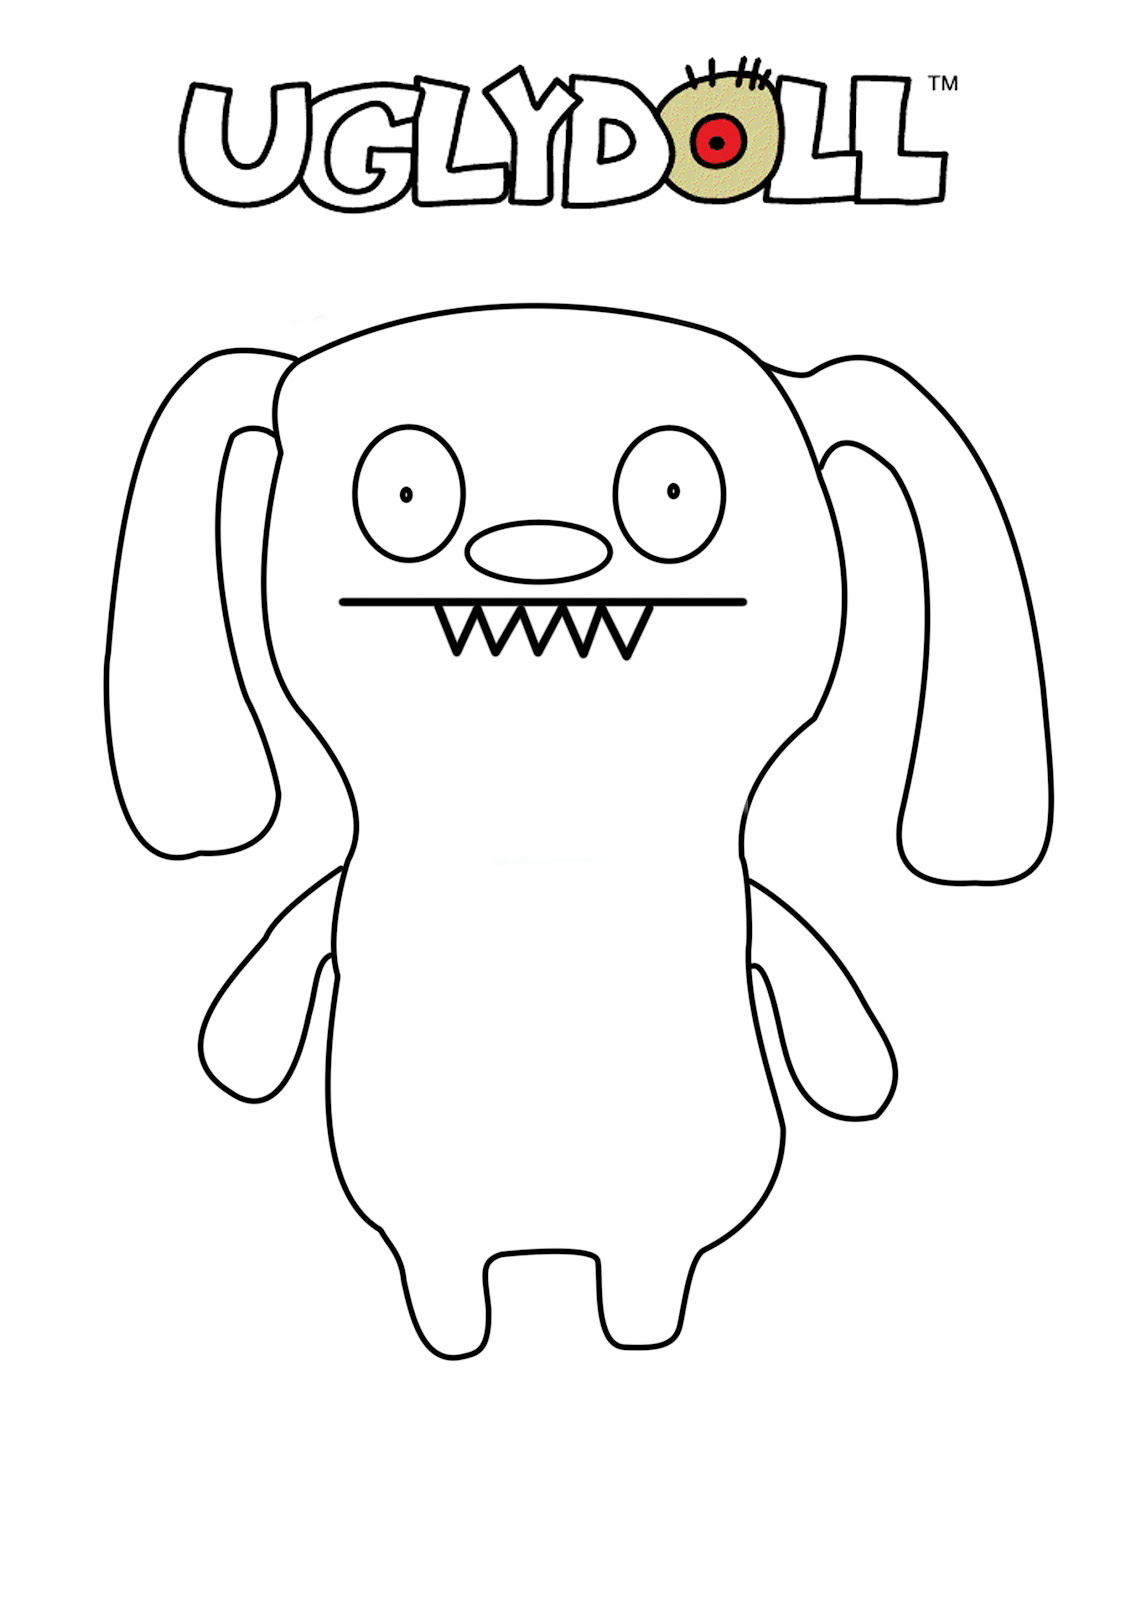 coloring pages of ugly dolls | Ugly Dolls Coloring Pages - Best Coloring Pages For Kids